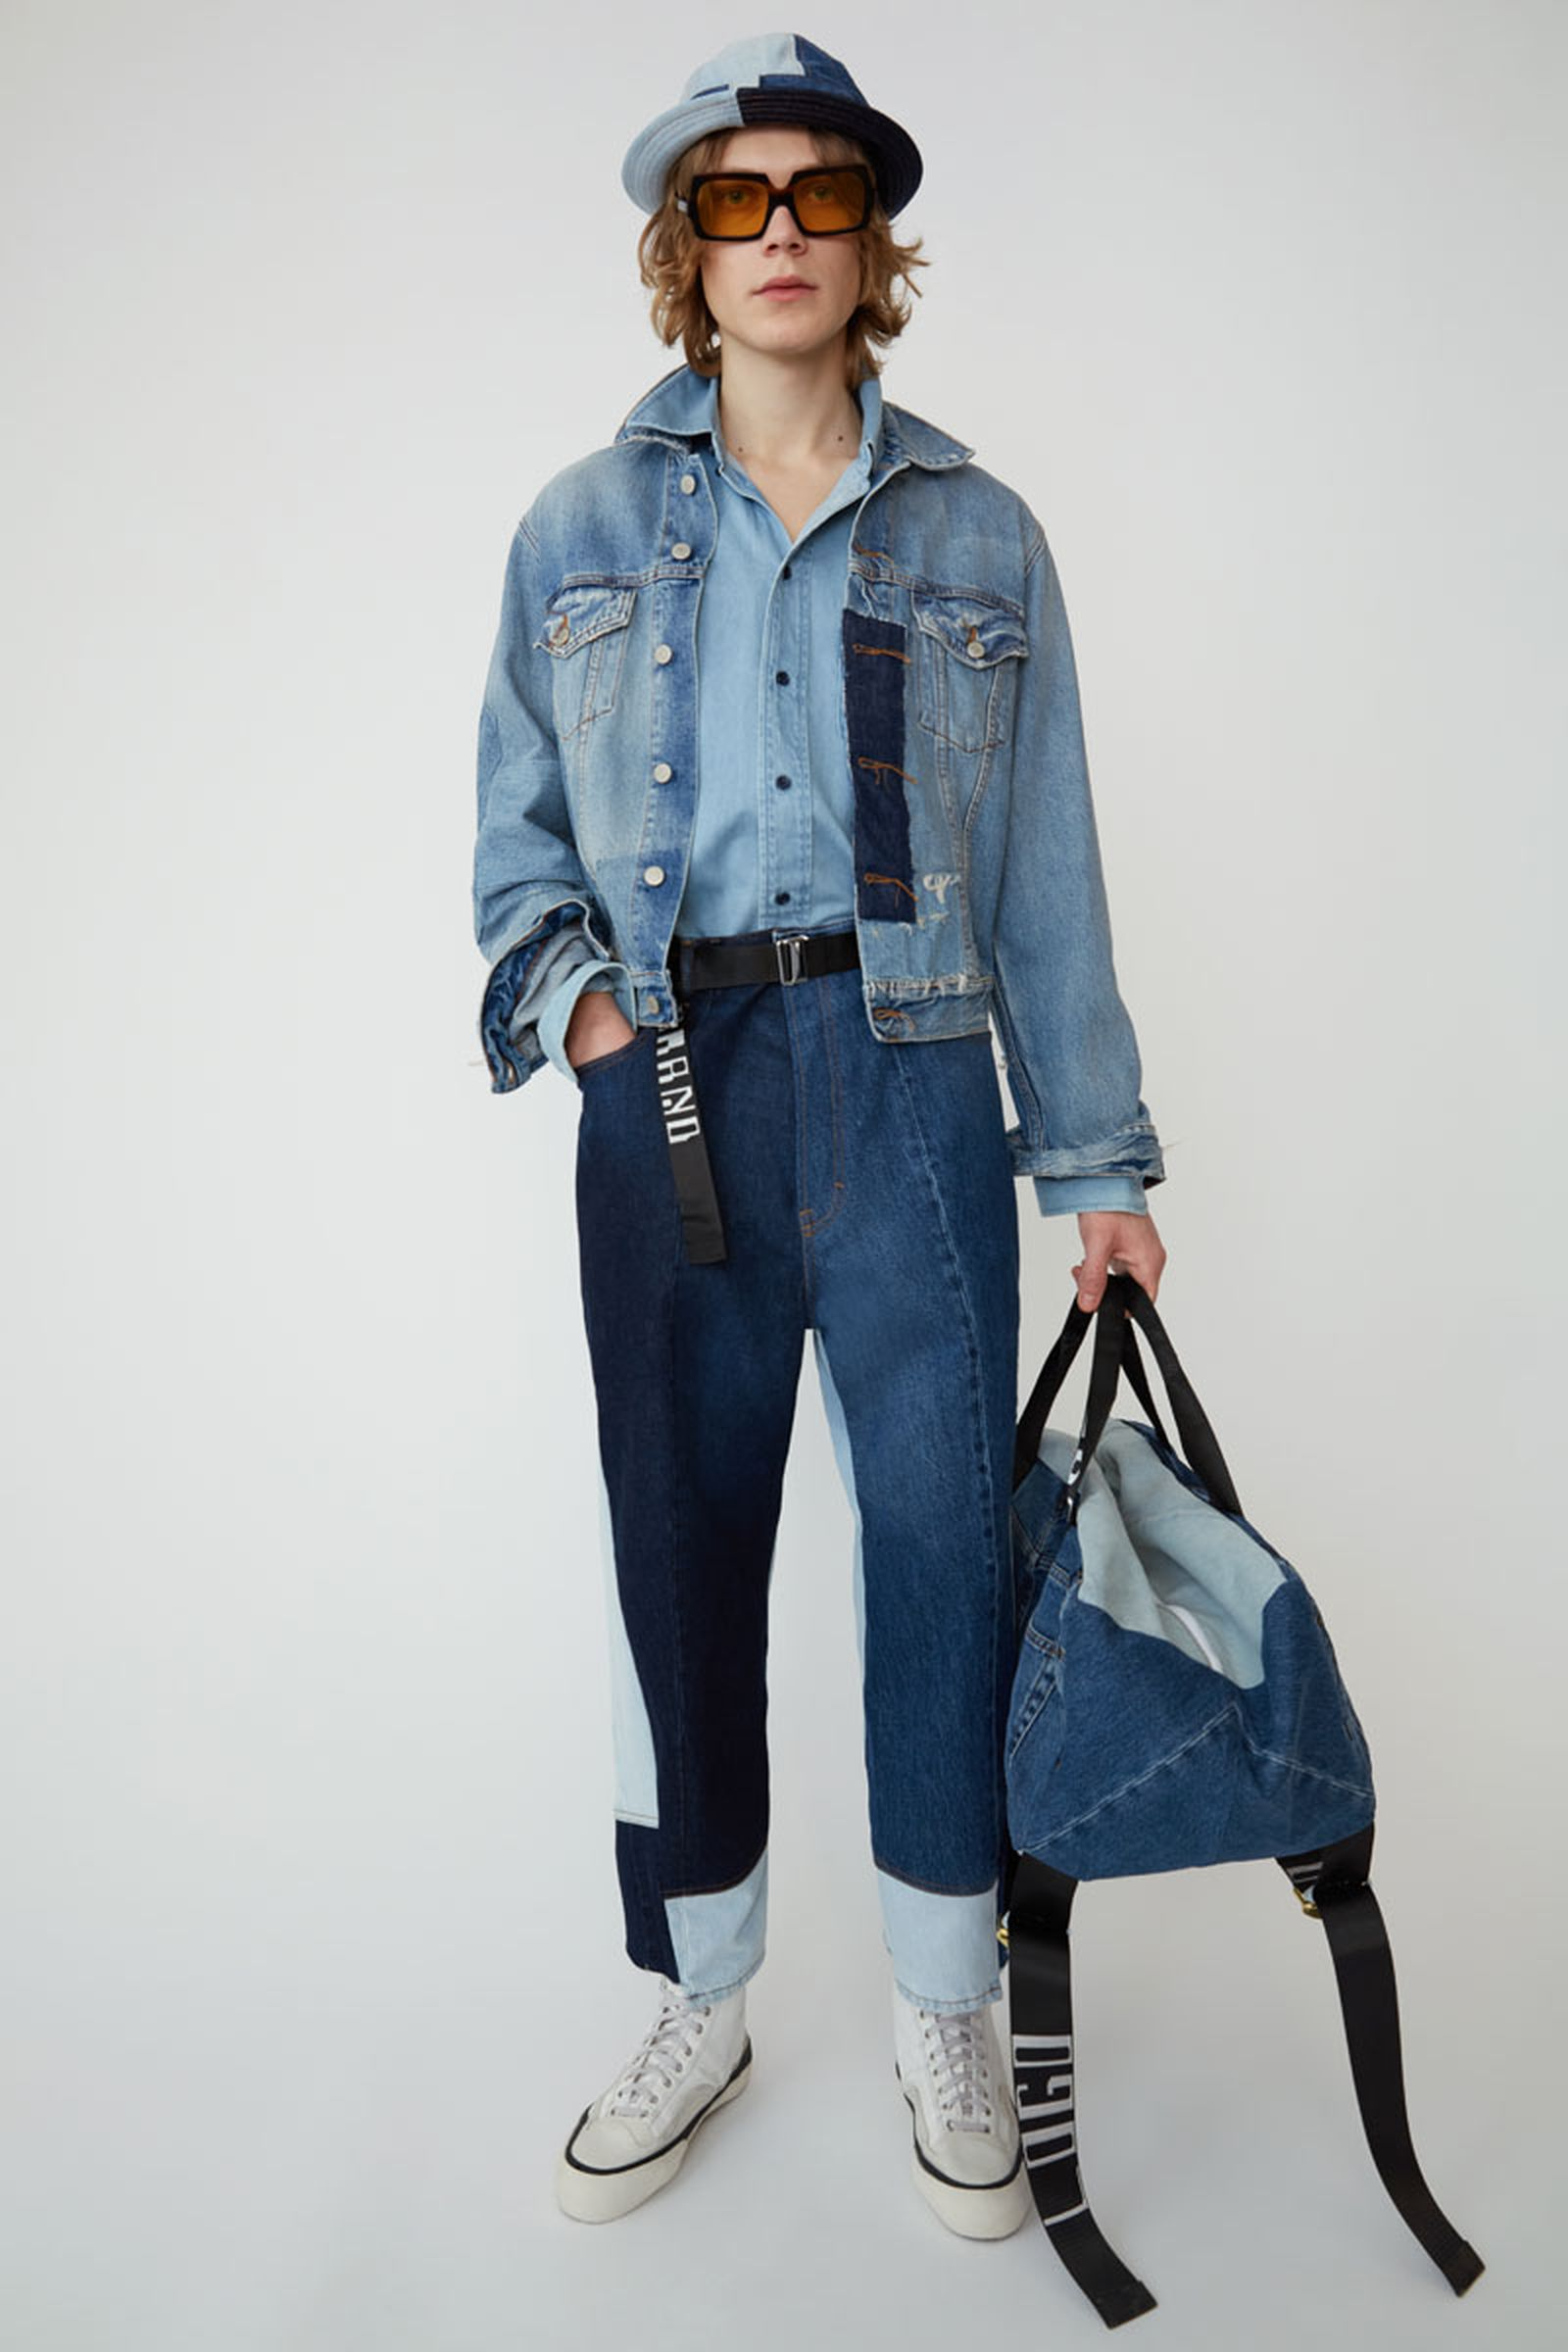 1acne studios ss19 denim collection